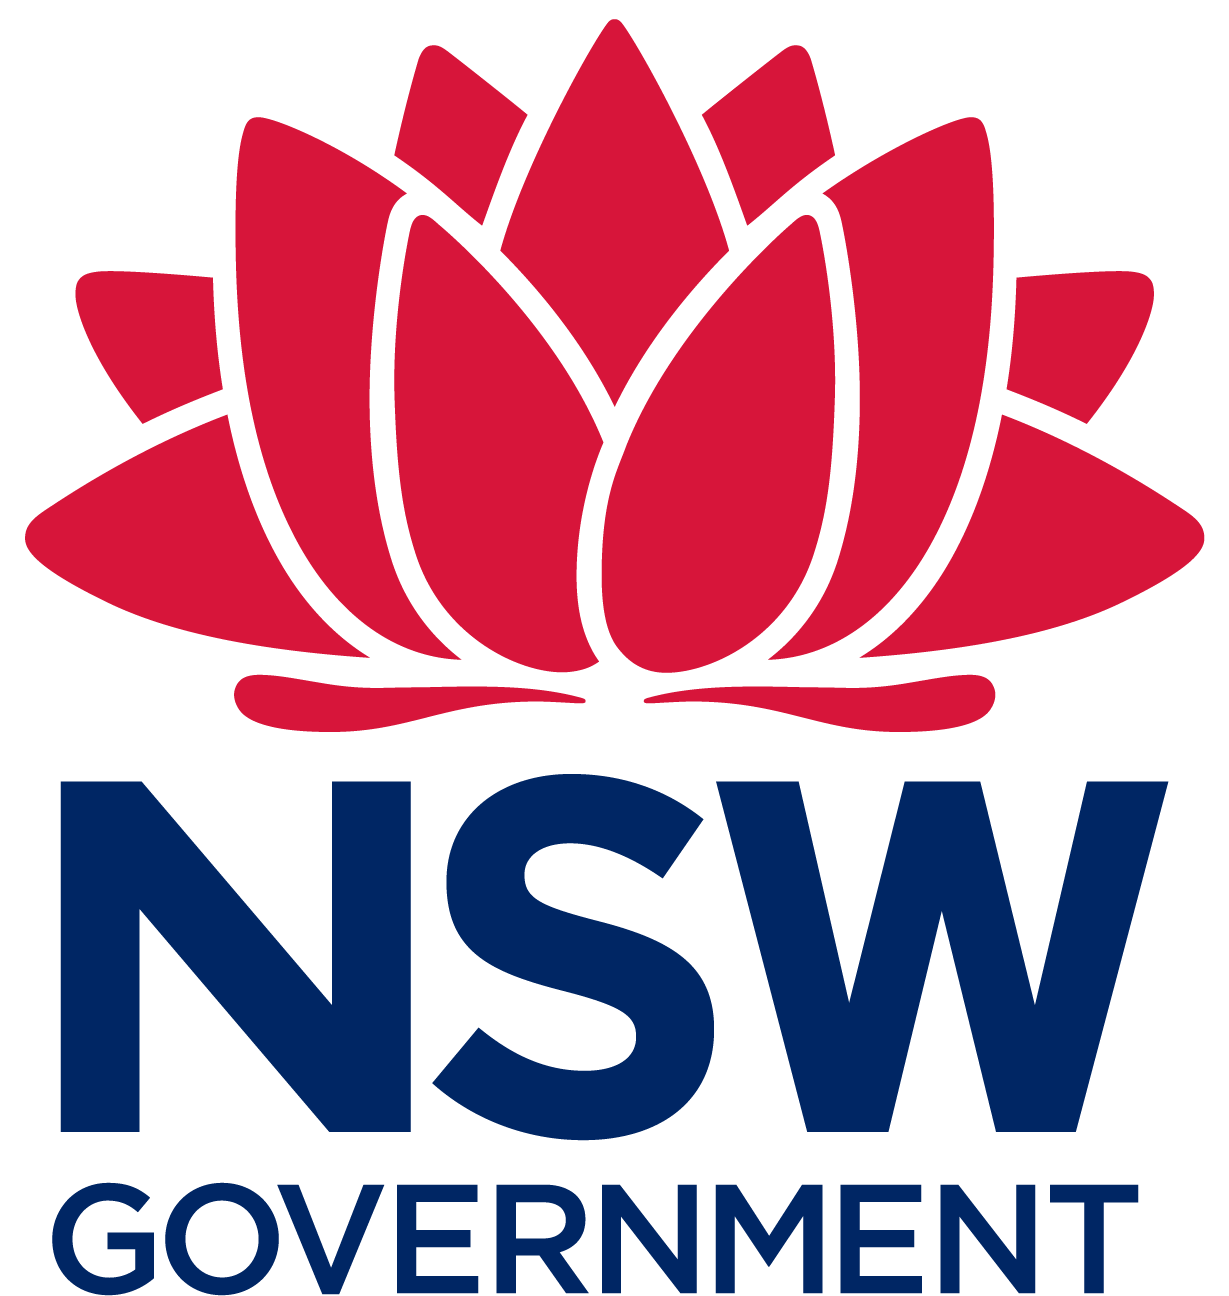 Picture of the NSW Government waratah